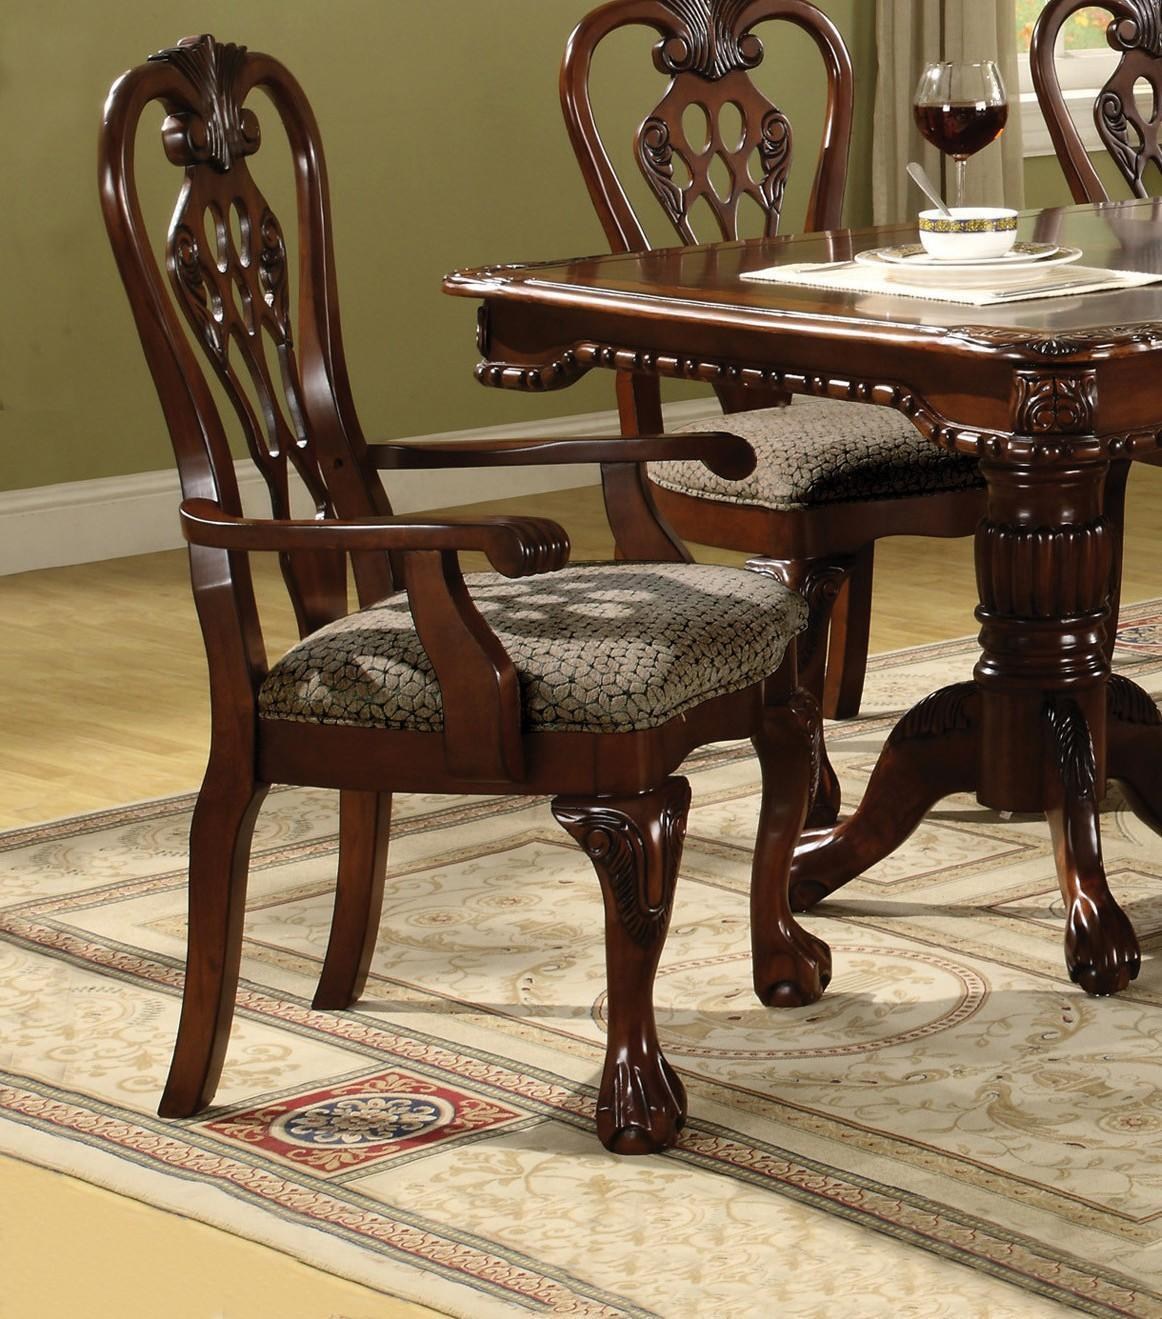 Brussels formal dining room set 9 piece w china cabinet for 9 piece formal dining room sets